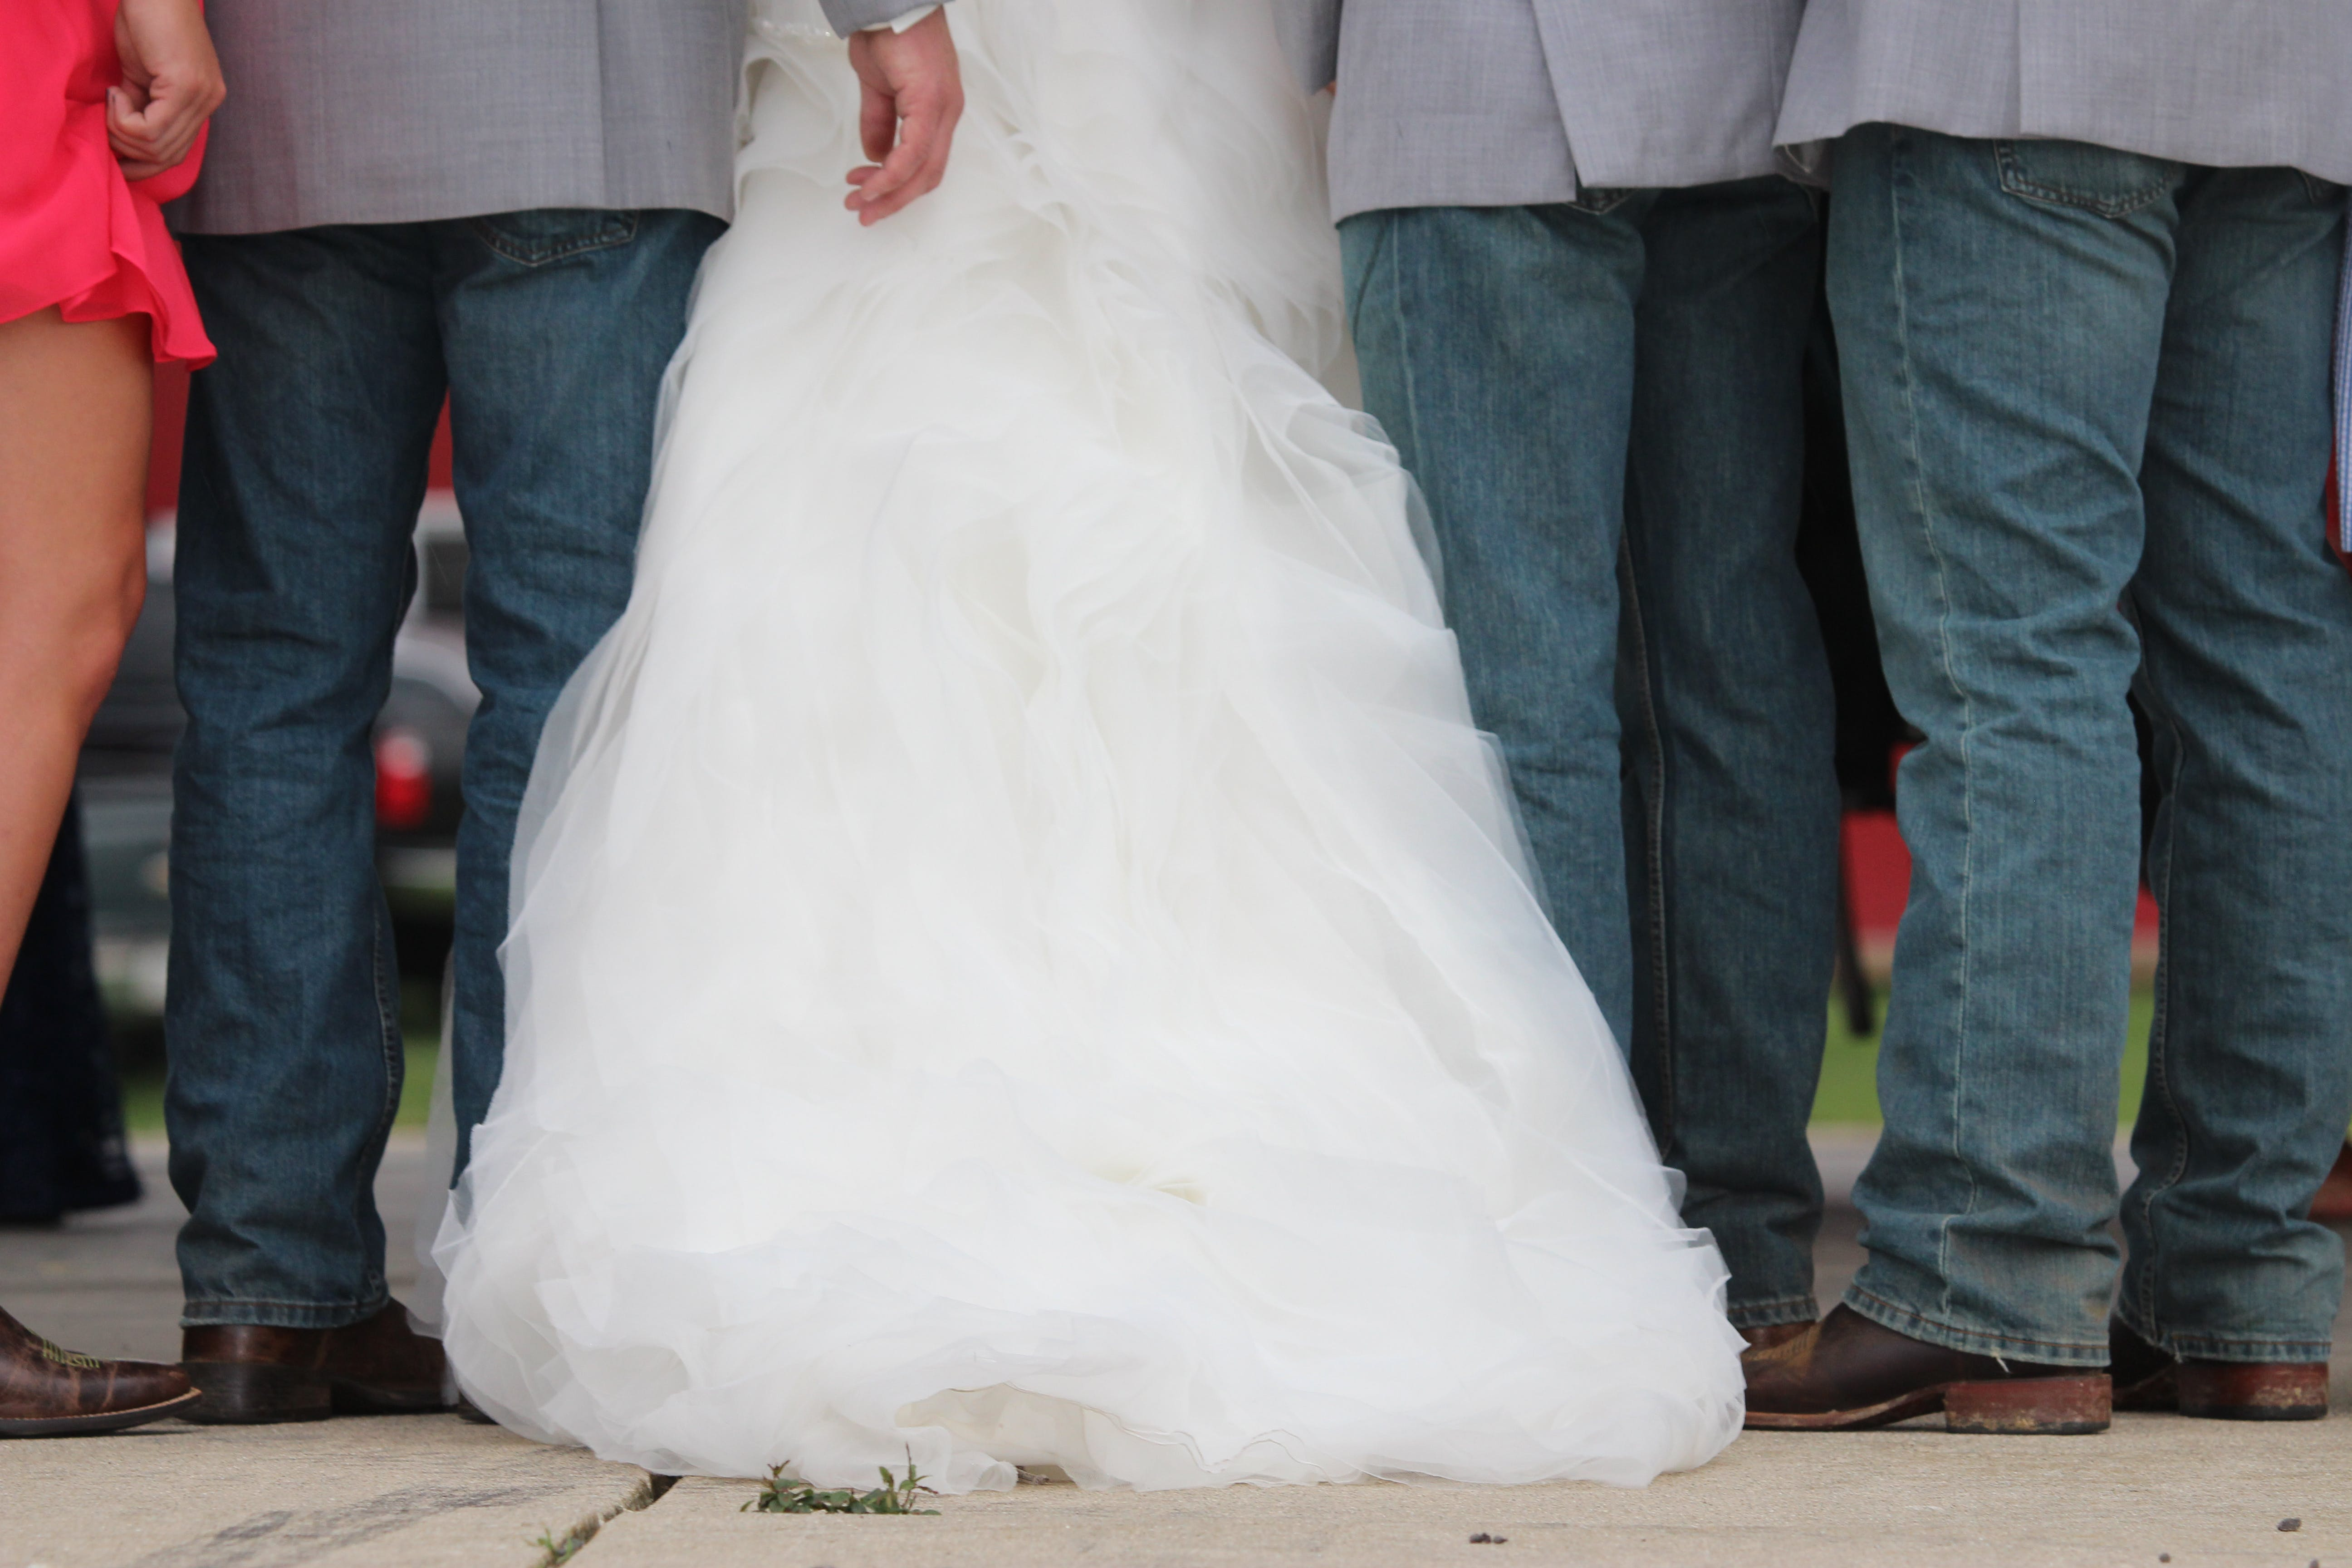 Three Men Wearing Gray Dress Shirt and Blue Denim Pants Between Woman in White Wedding Gown